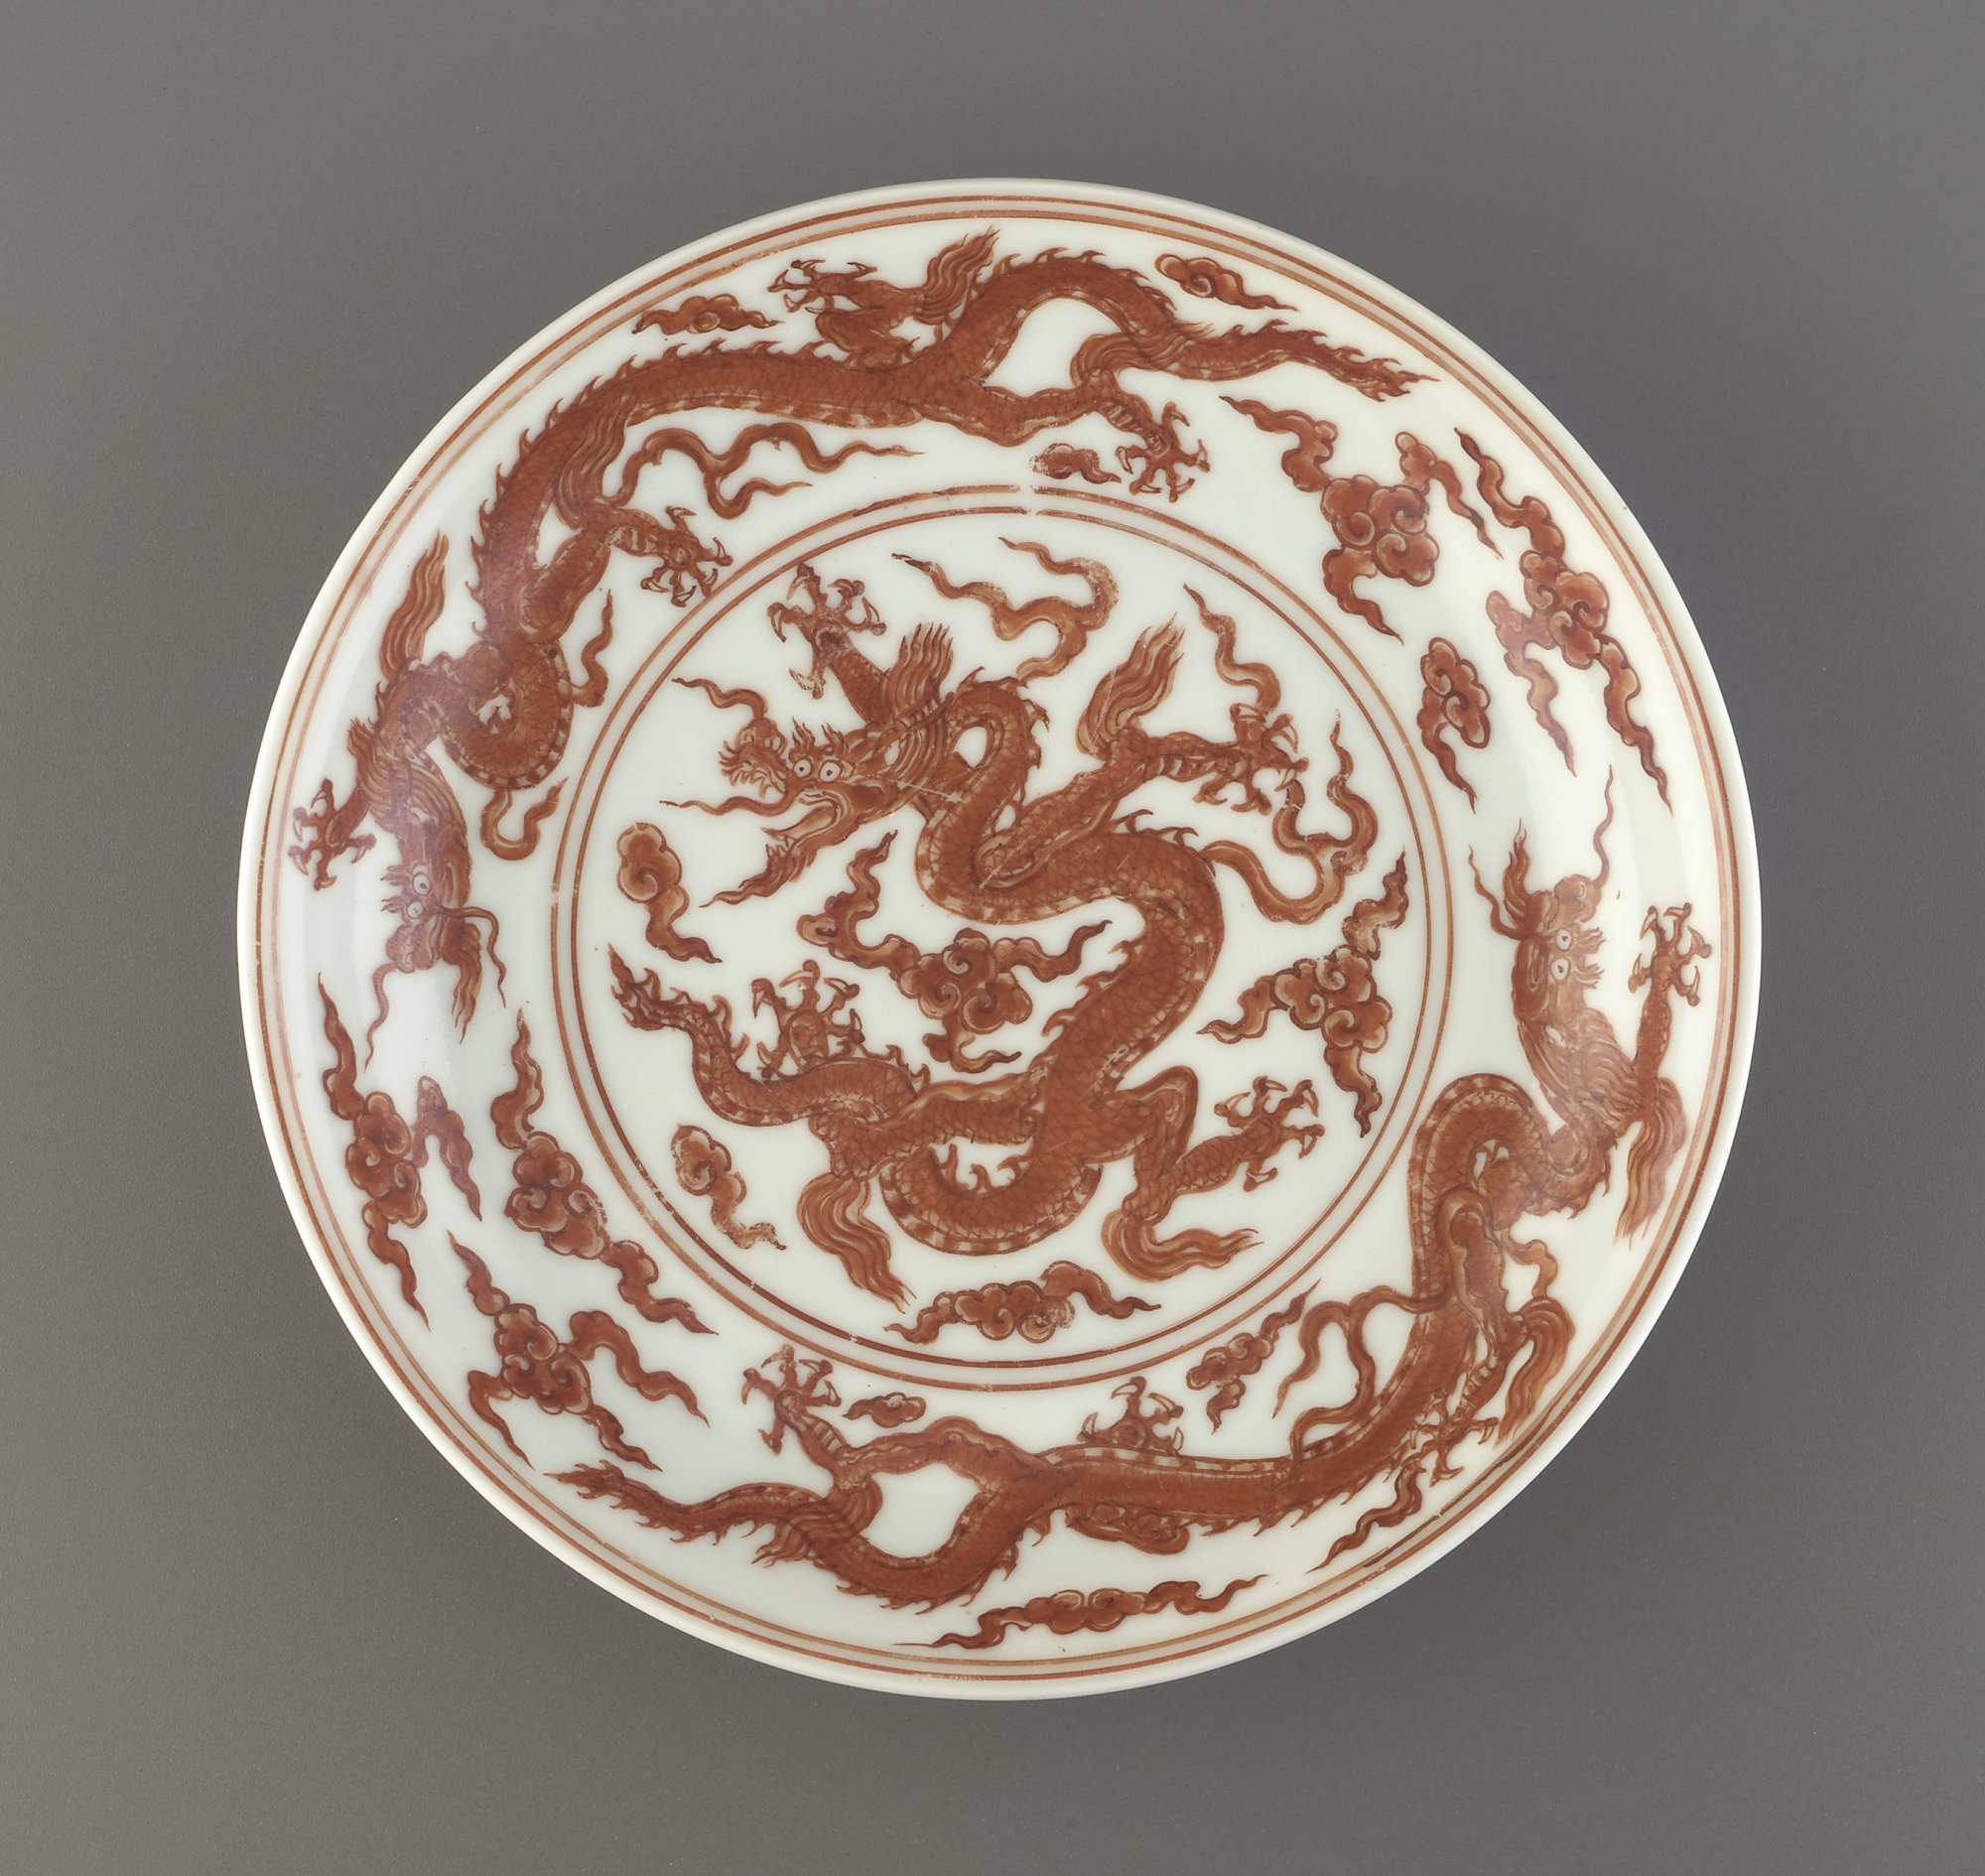 interior: Dish with design of dragons and clouds